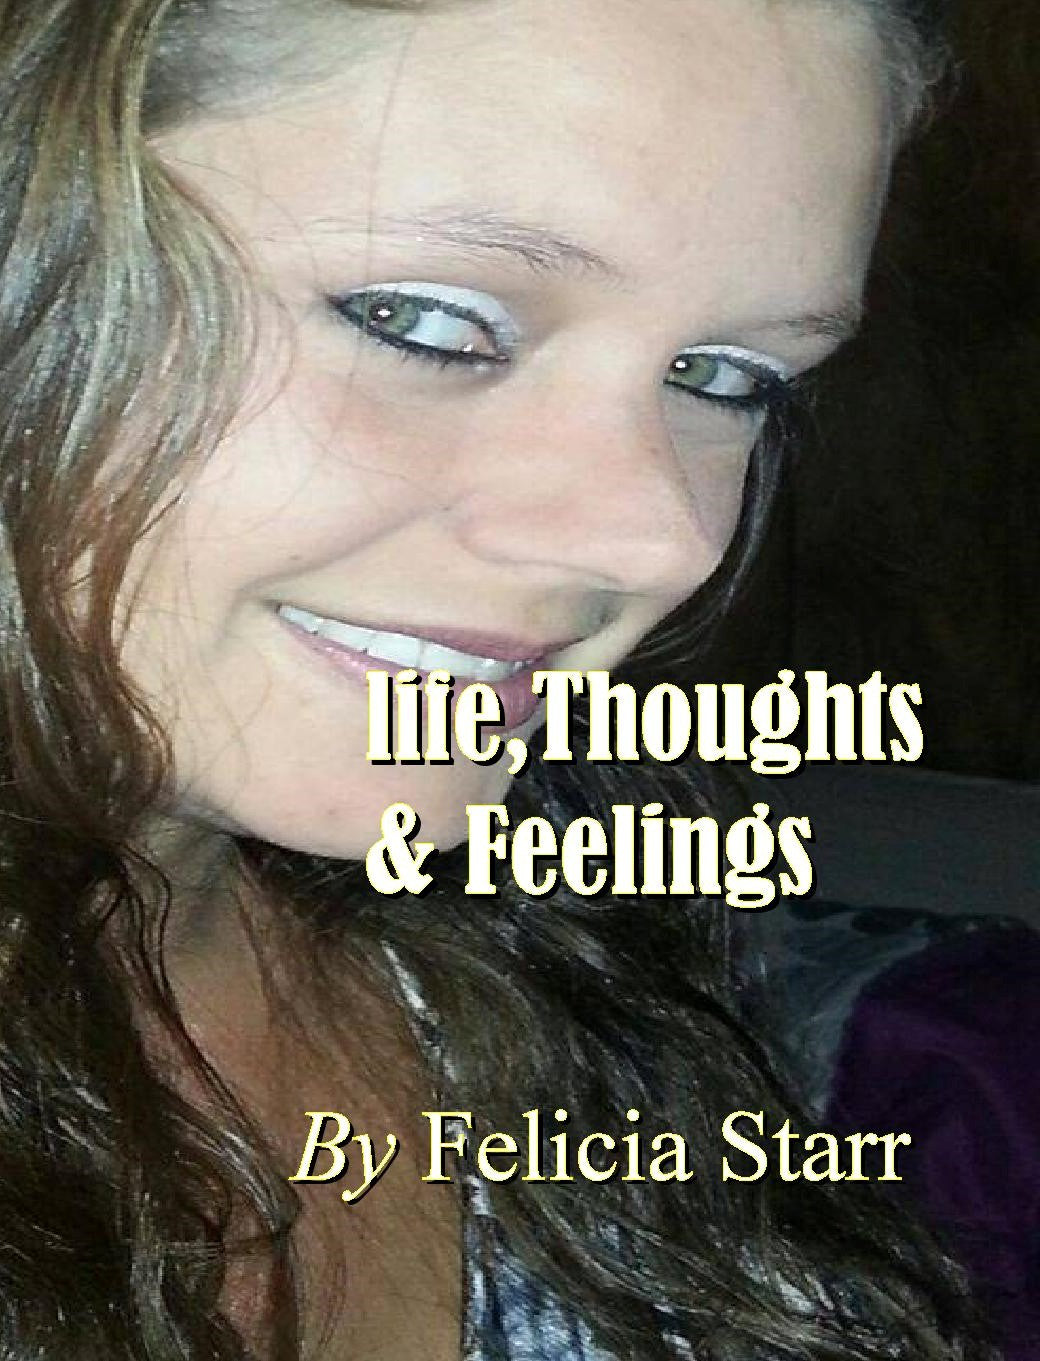 Life, Thoughts & Feelings - Felicia Starr